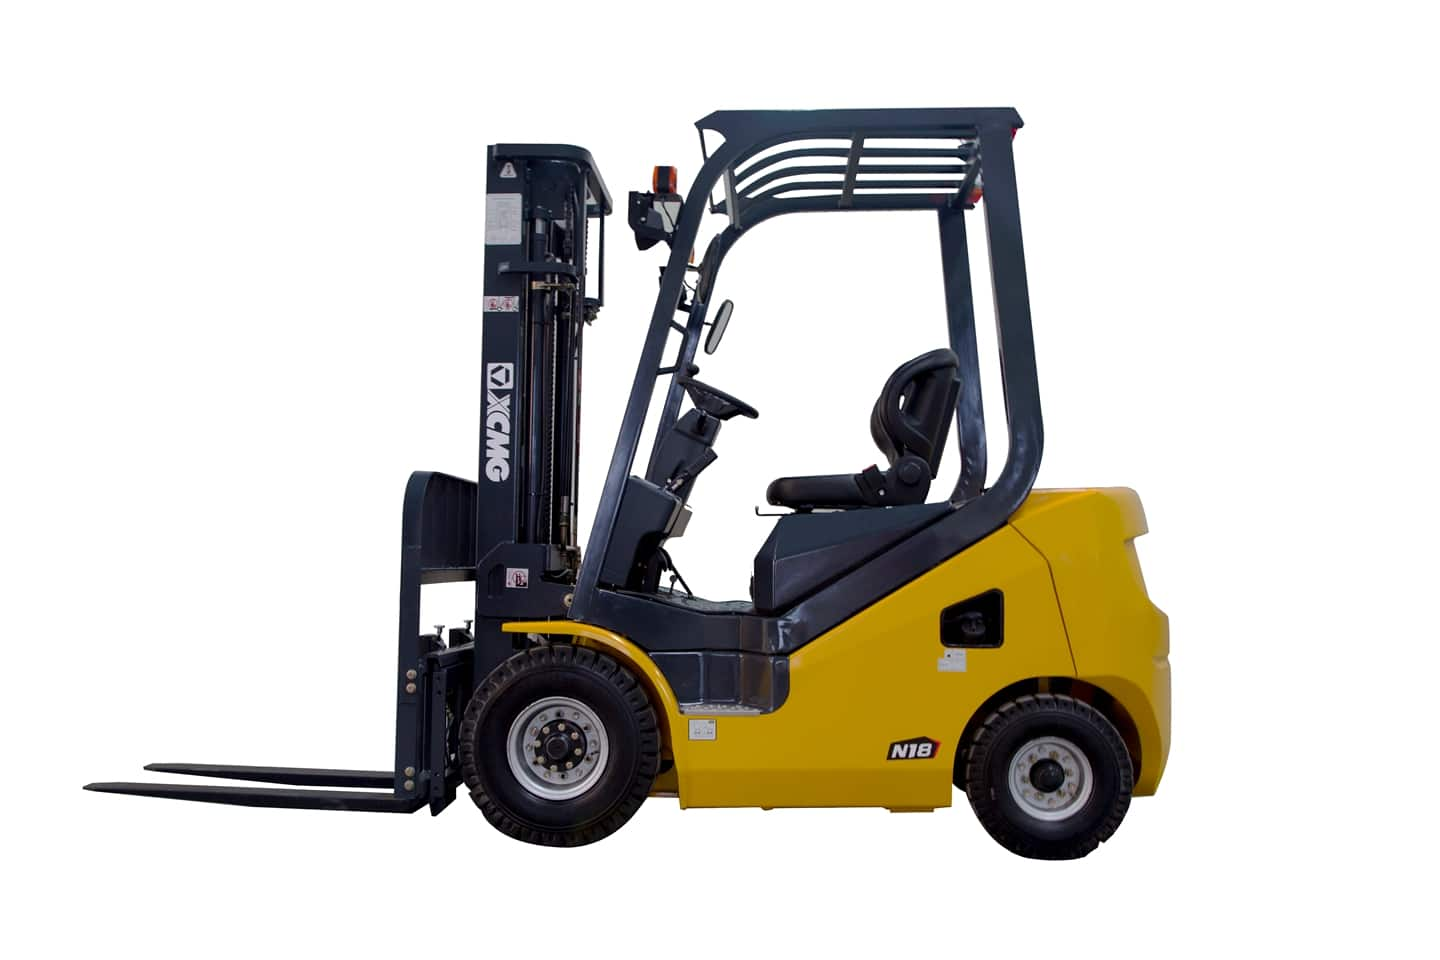 XCMG Official 1.5-1.8T Diesel Forklifts for sale